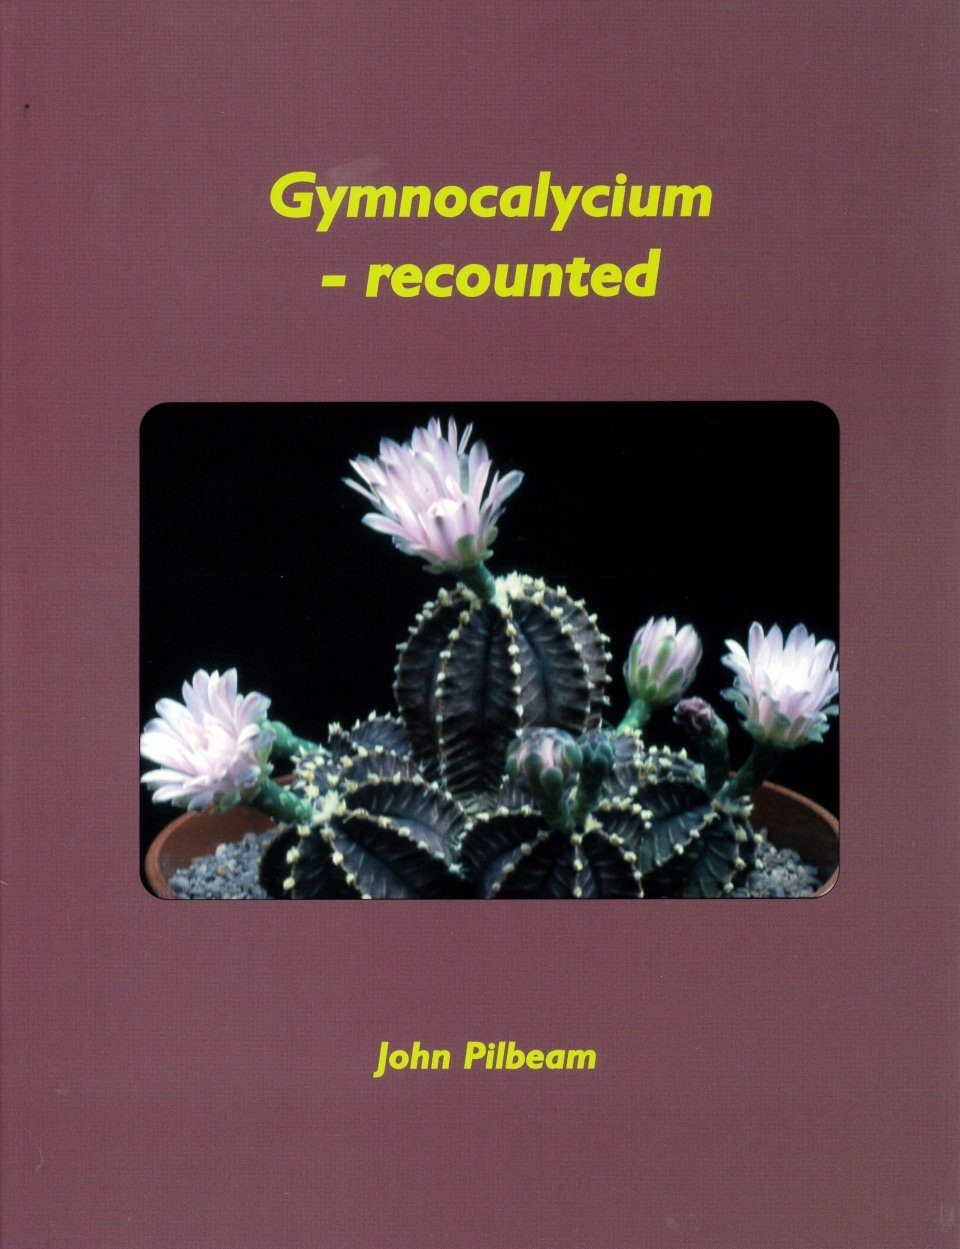 Gymnocalycium – Recounted